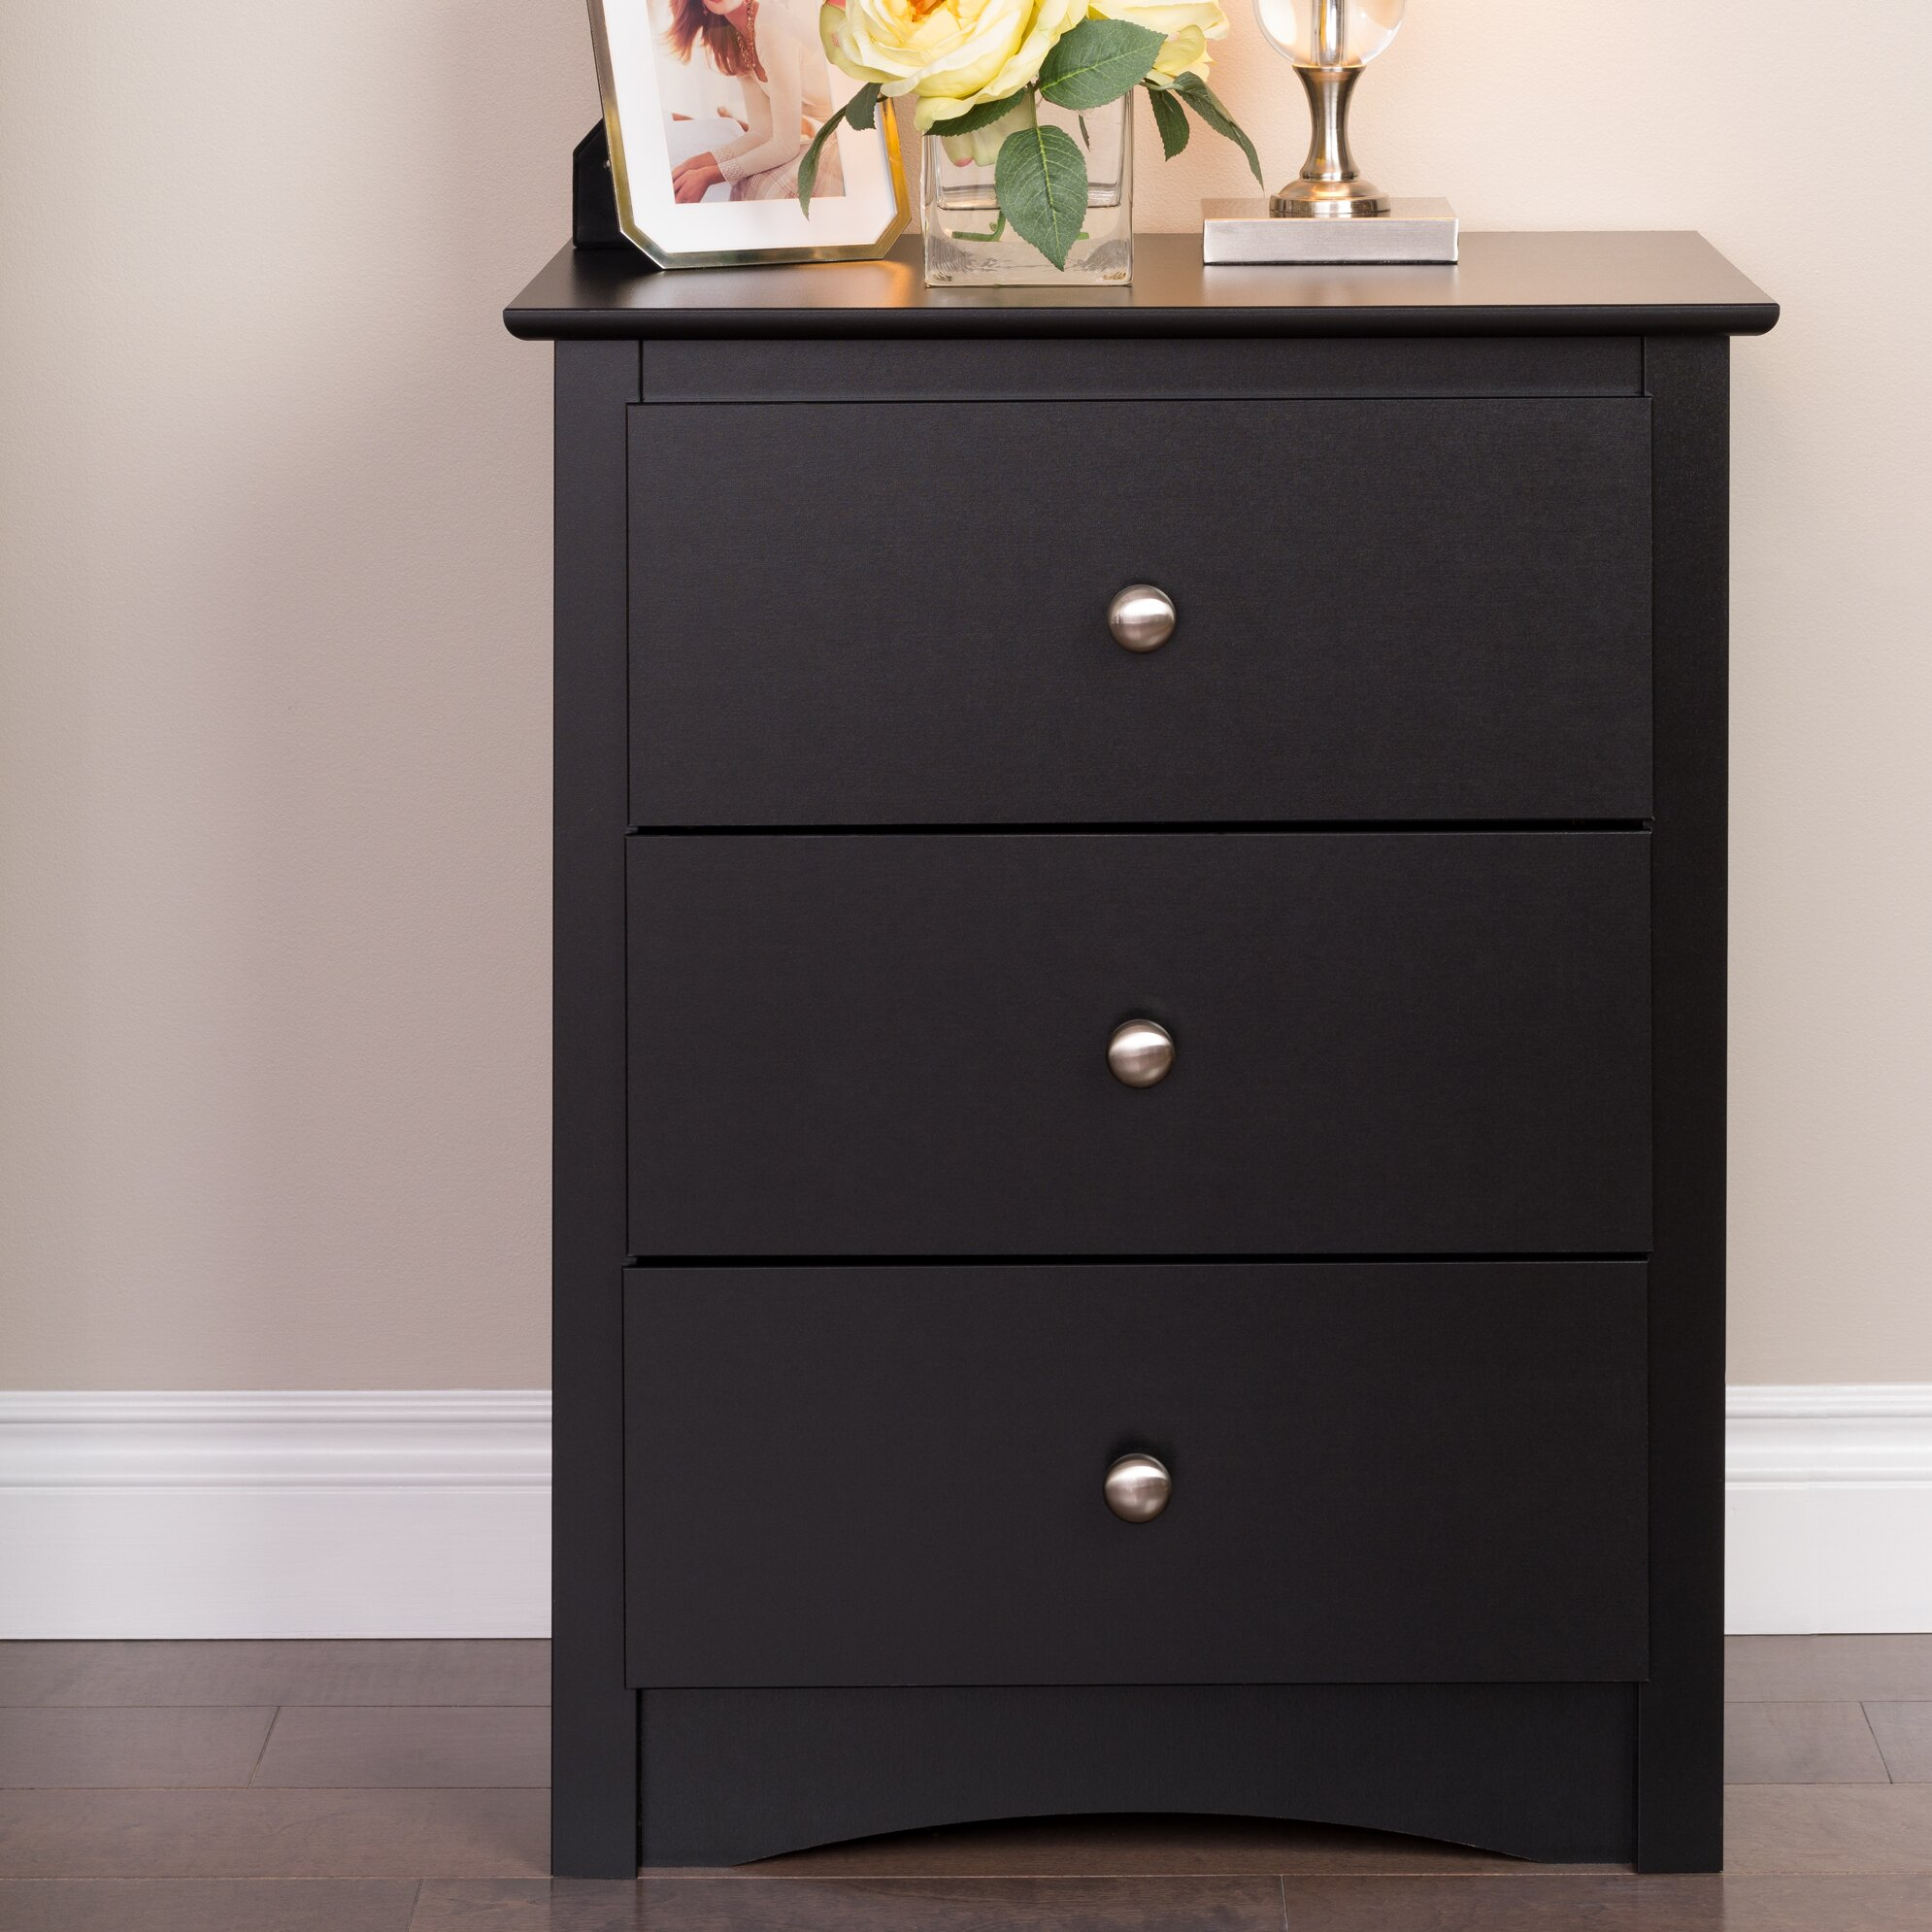 latitude run wanda tall black 3 drawer nightstand reviews. Black Bedroom Furniture Sets. Home Design Ideas